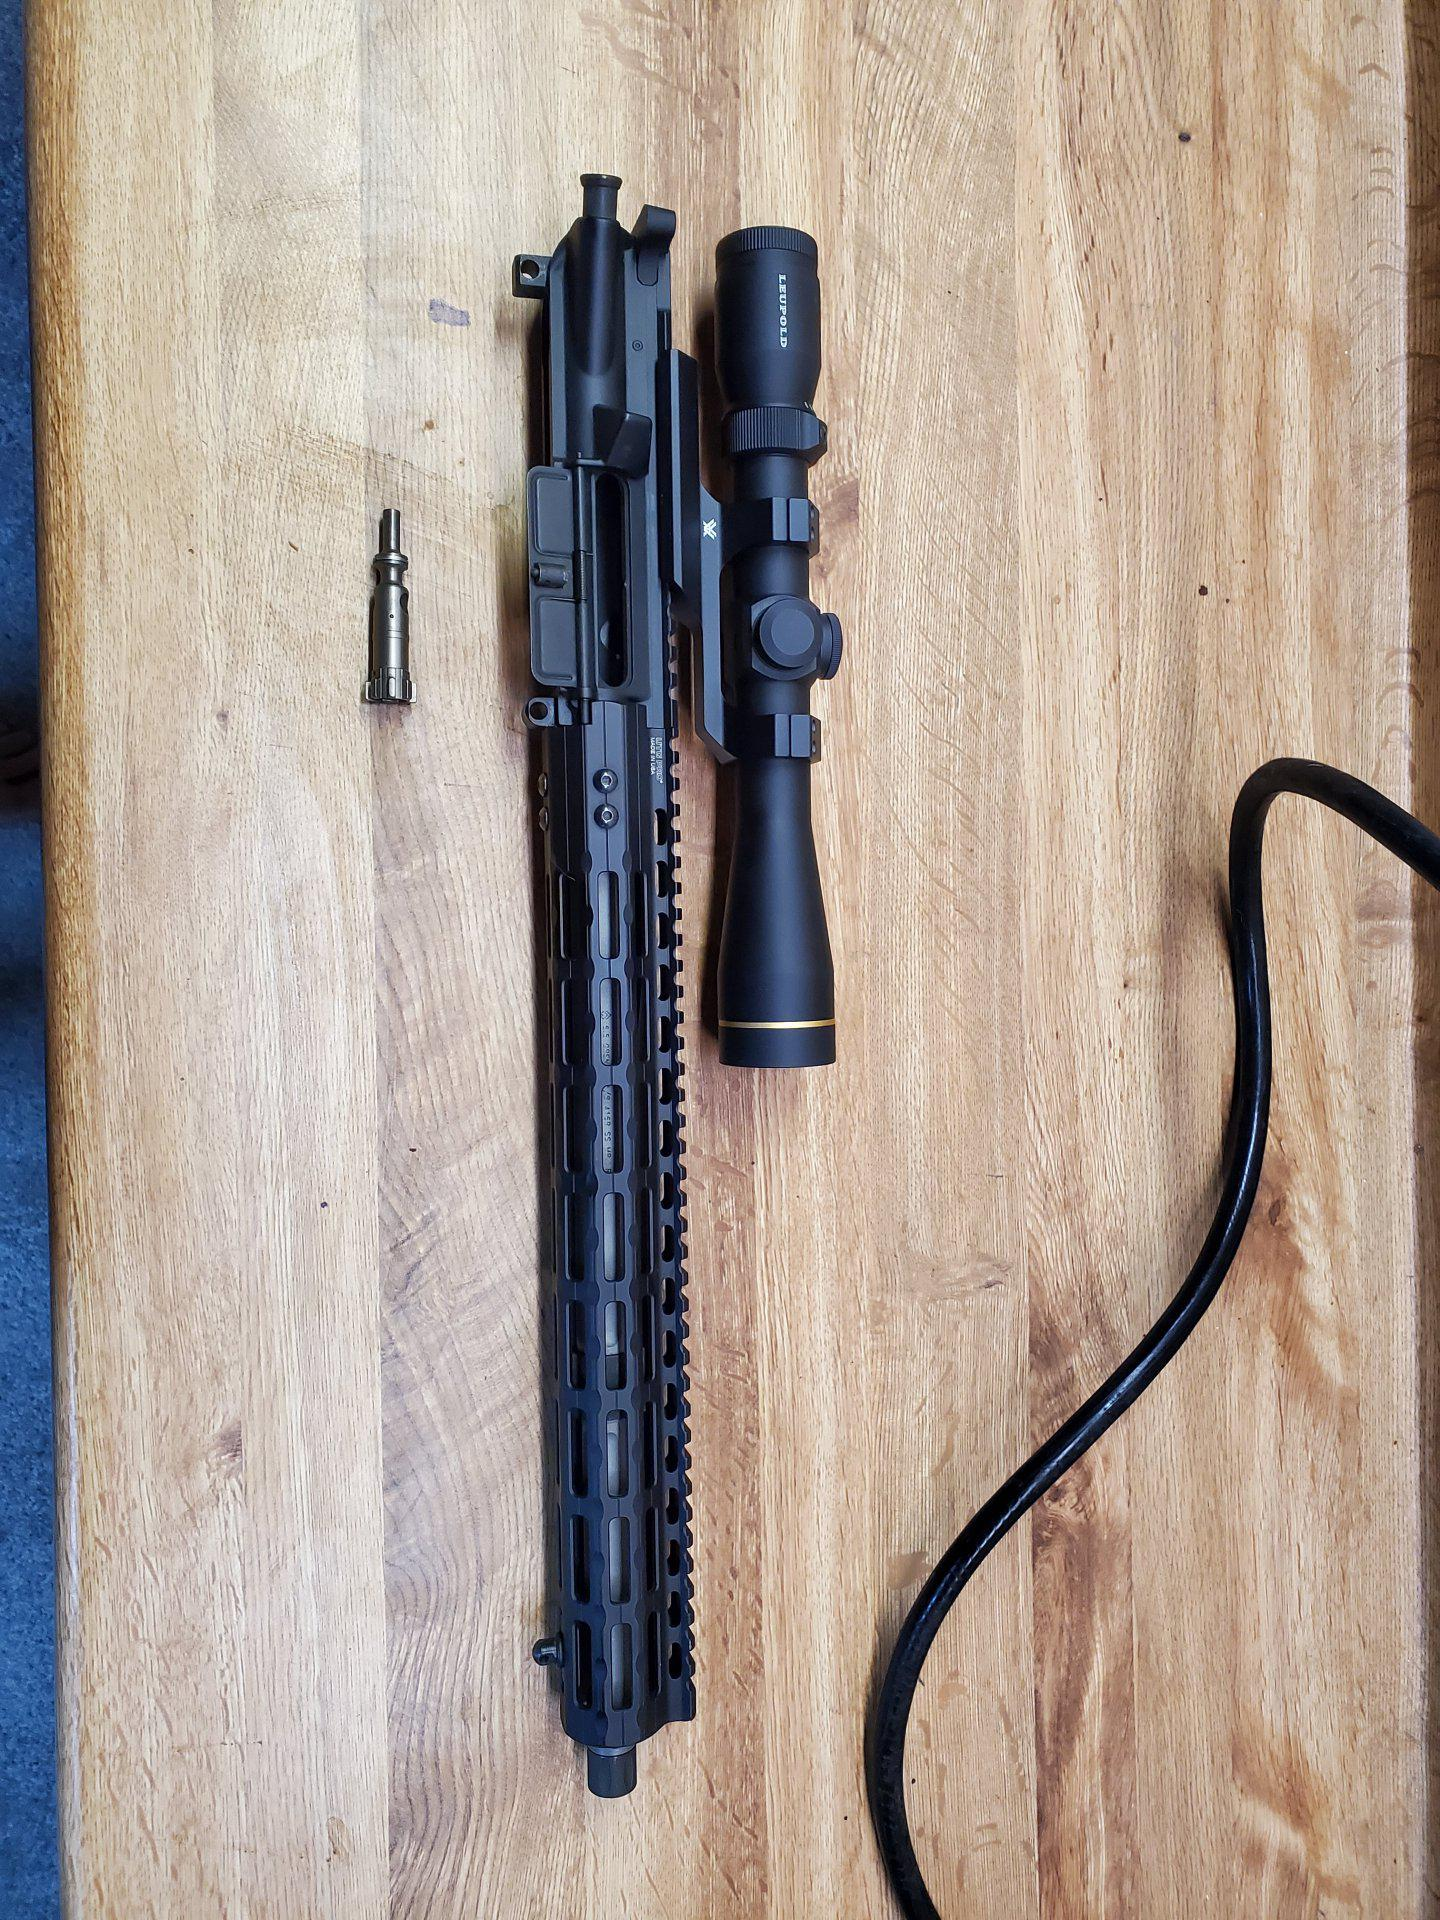 6.5 Grendel setup - Hunting Items For Sale and Trade ...